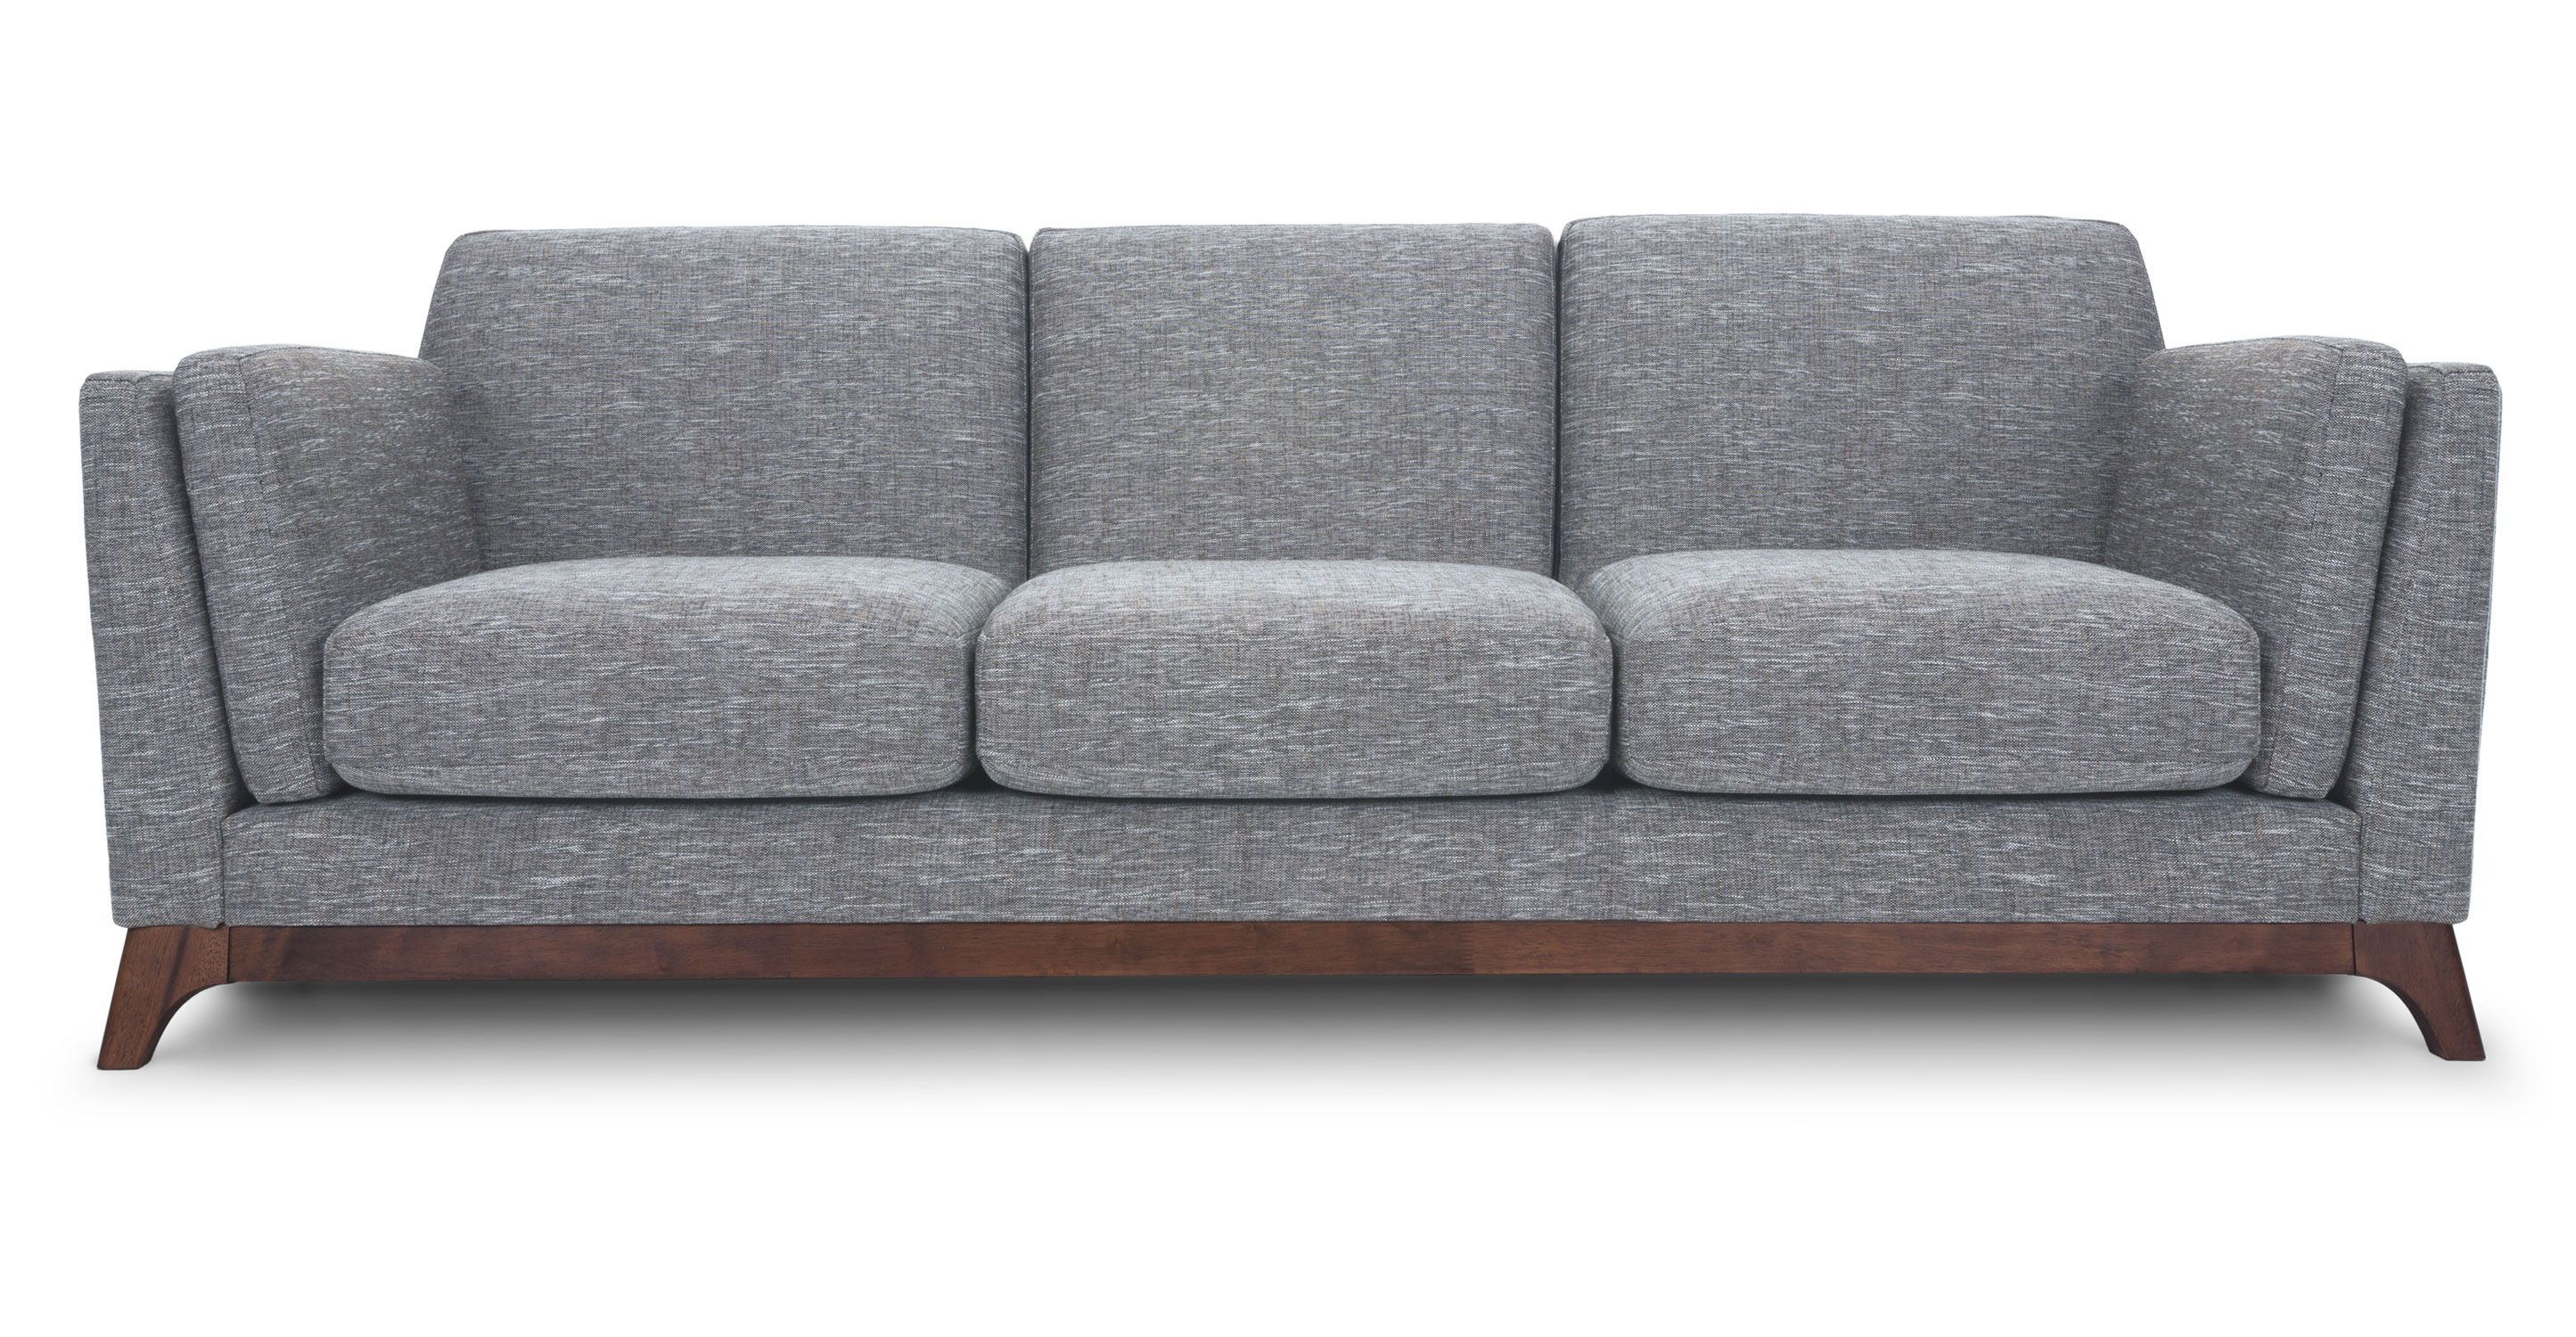 Gray sofa 3 seater with solid wood legs article ceni for Modern love seats